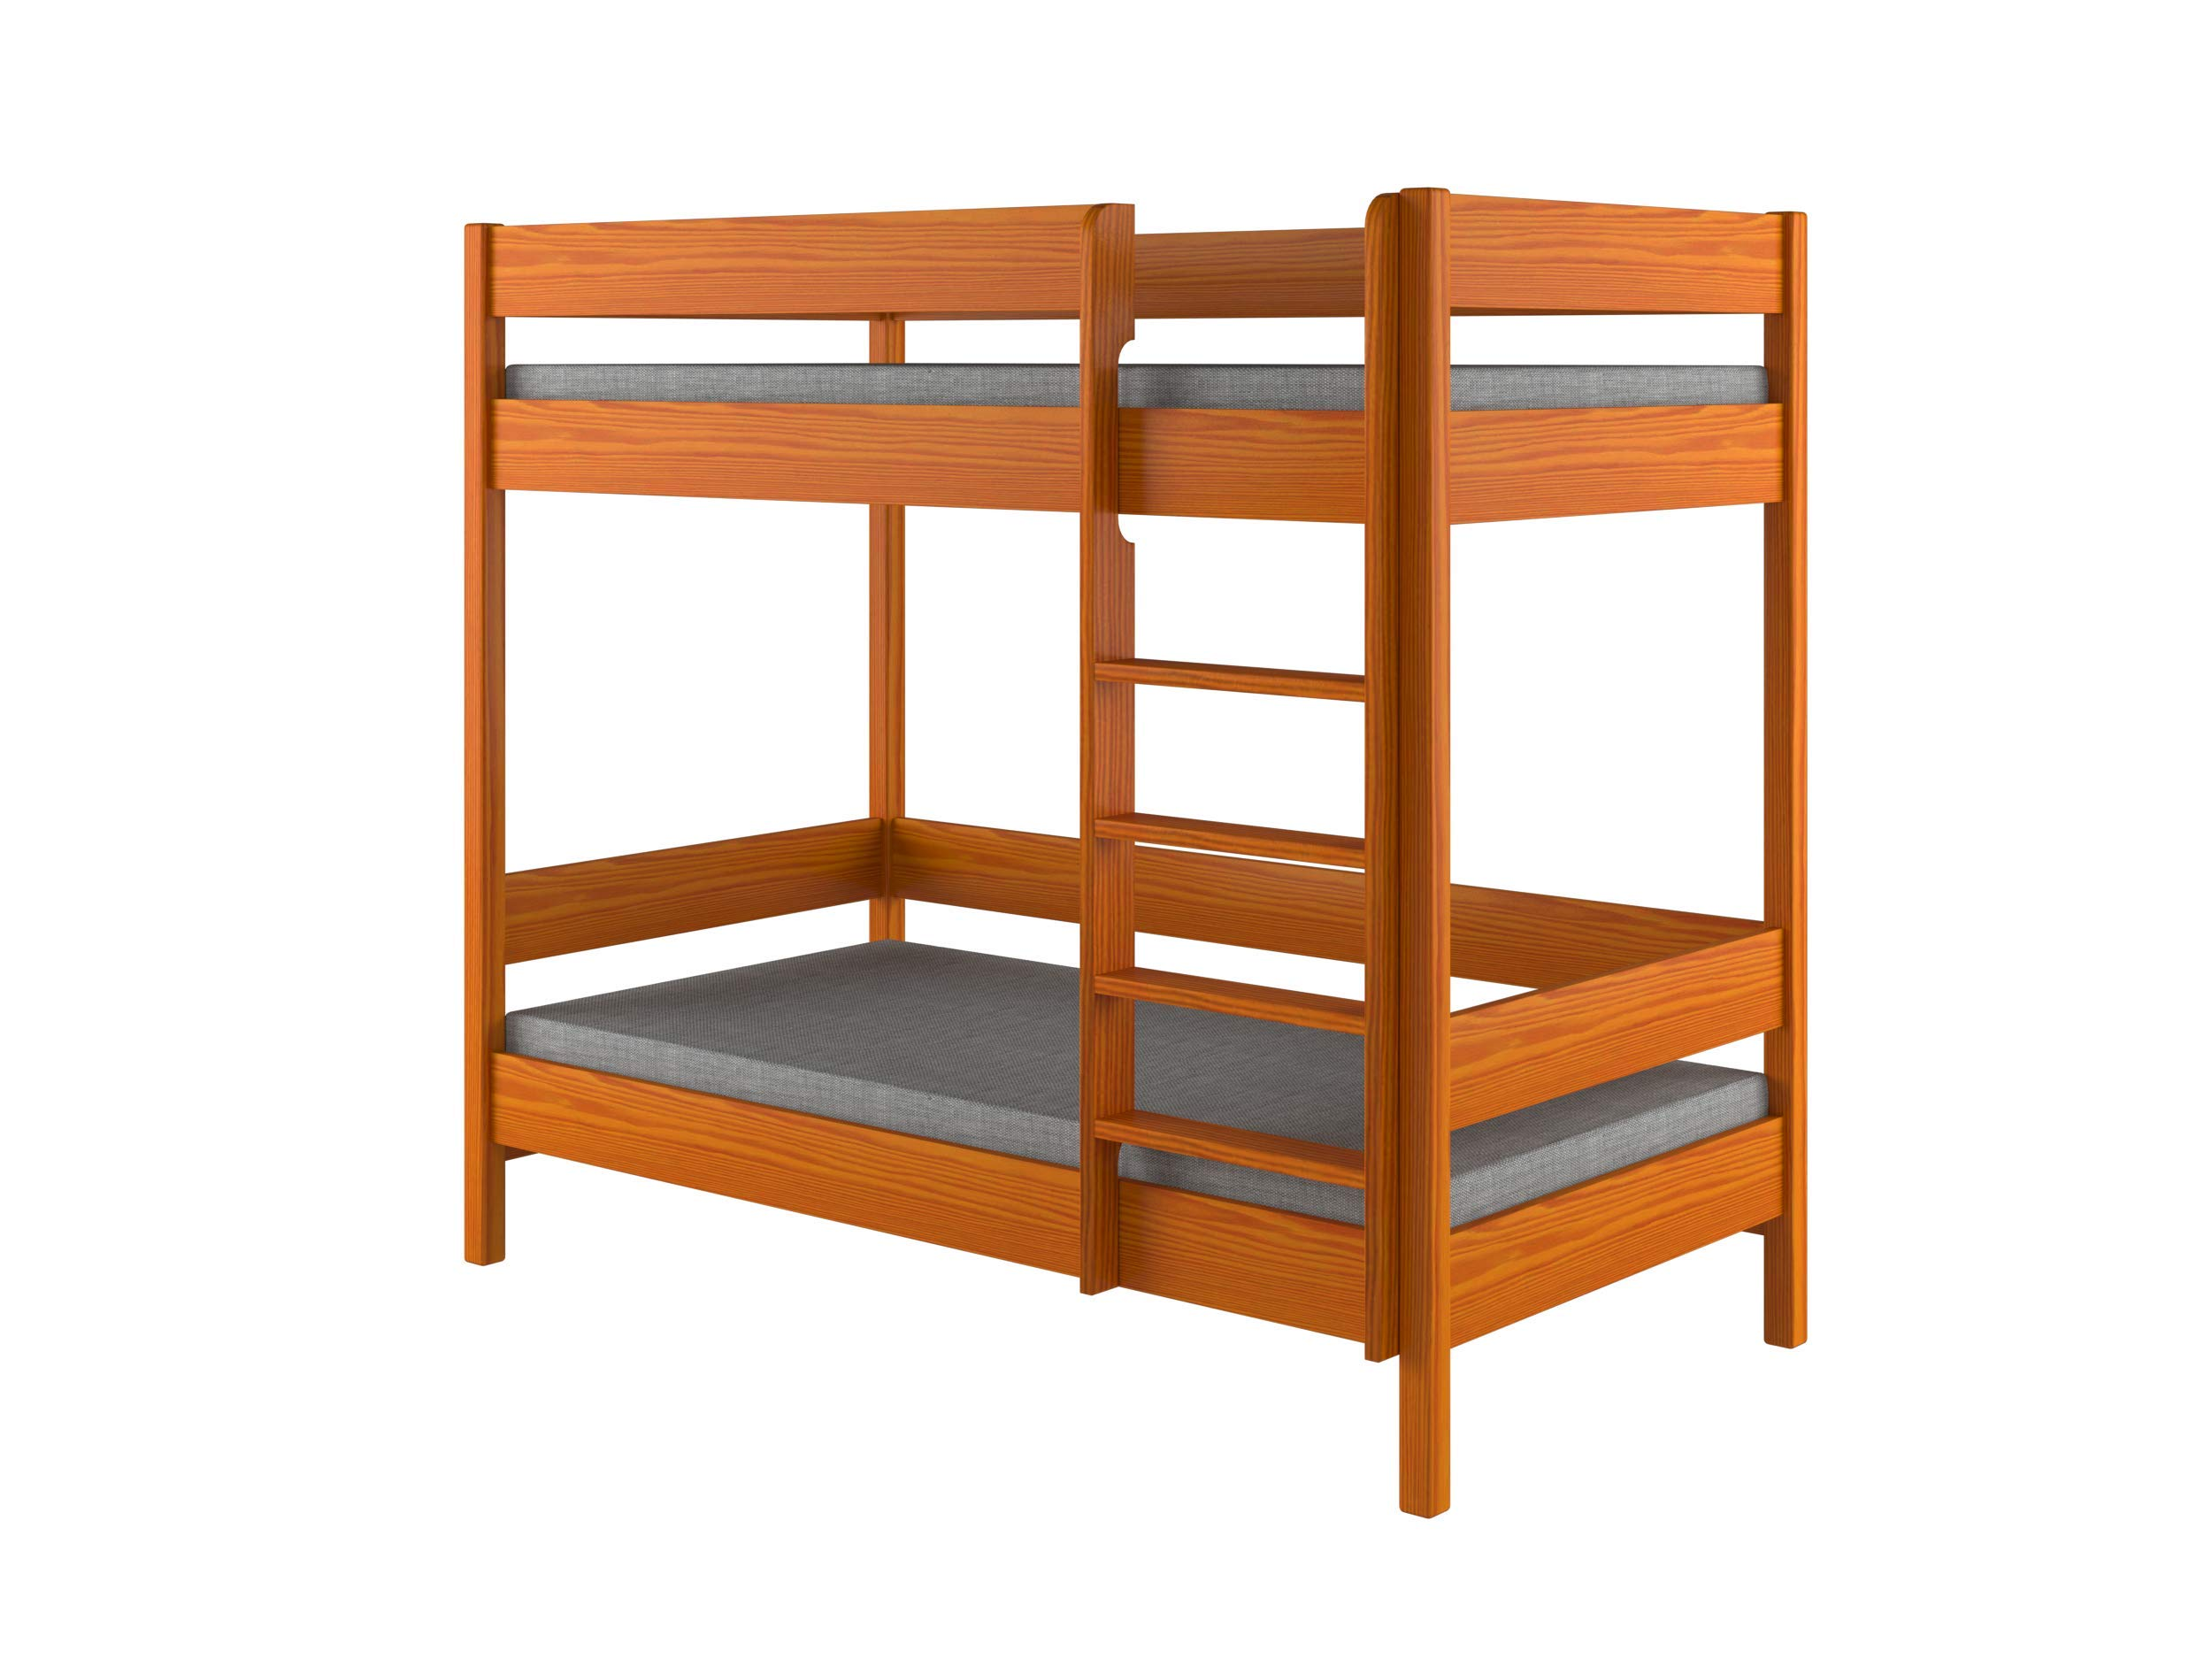 Children's Beds Home Bunk Beds - Kids Children Juniors Single with 2 Foam Mattress but No Drawers (200x90, Alder) Children's Beds Home Bed with barriers internal dimensions: 140x70x160, 160x80x160, 180x80x160, 180x90x160, 200x90x160. External dimensions: 147x77x160, 167x87x160, 187x87x160, 187x97x160, 207x97x160 Bunk Bed with access from the - Front (D-1), Universal bed entrance - left or right side. 1